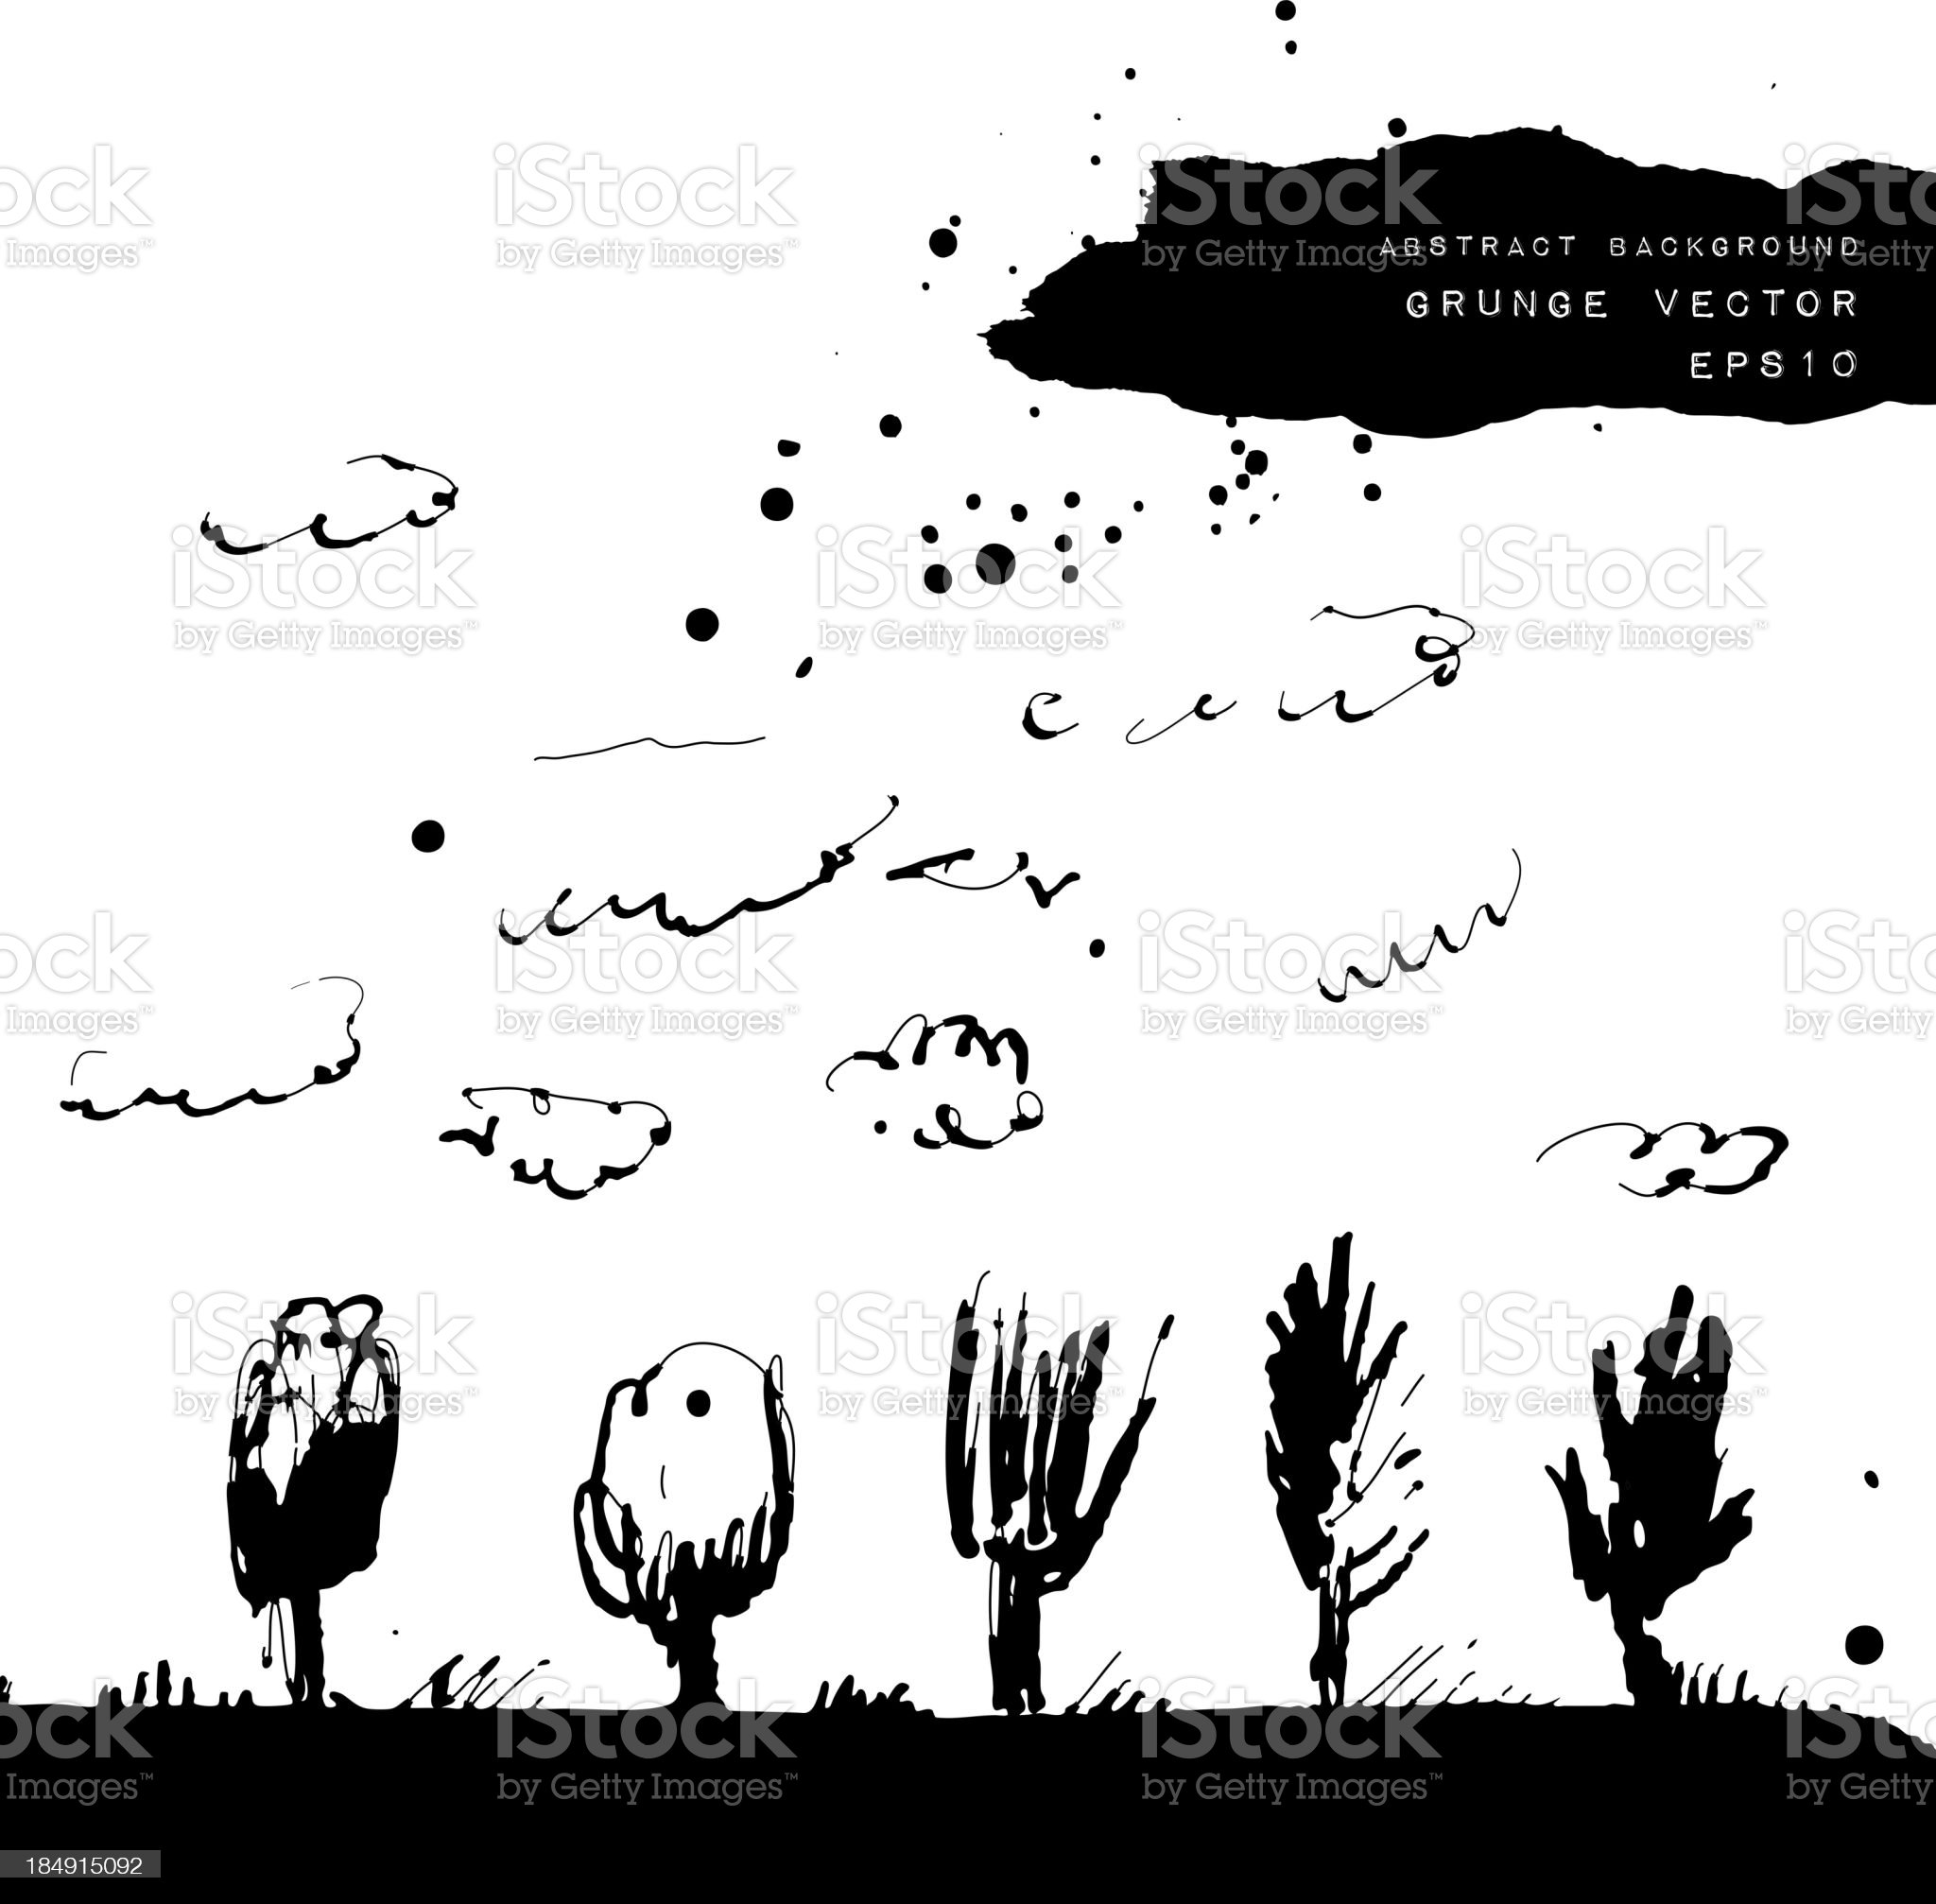 Grunge vector hand drawn background. royalty-free stock vector art